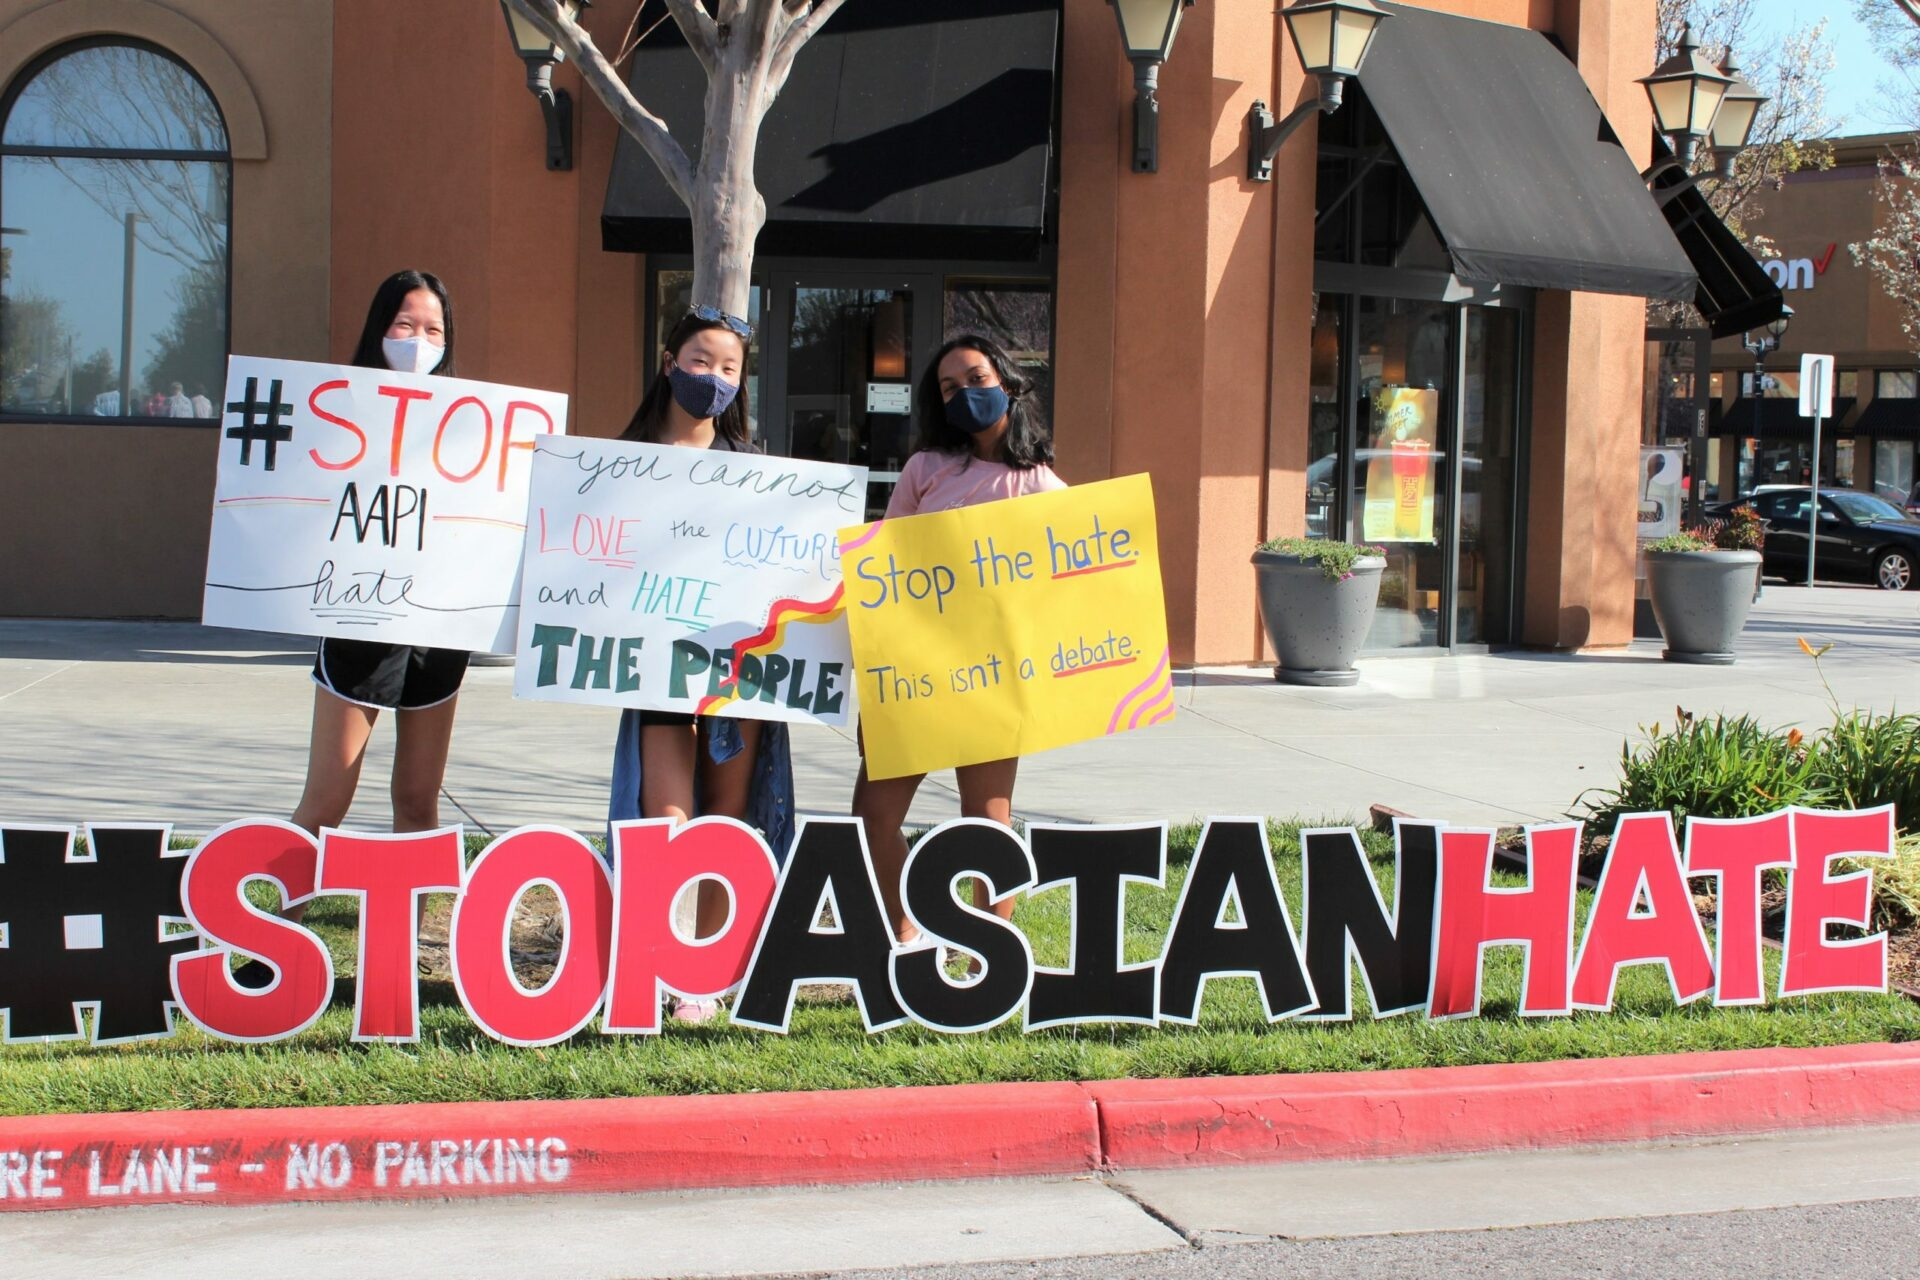 www.svvoice.com: A Neighborhood Incident Prompts a #StopAsianHate Rally in Santa Clara